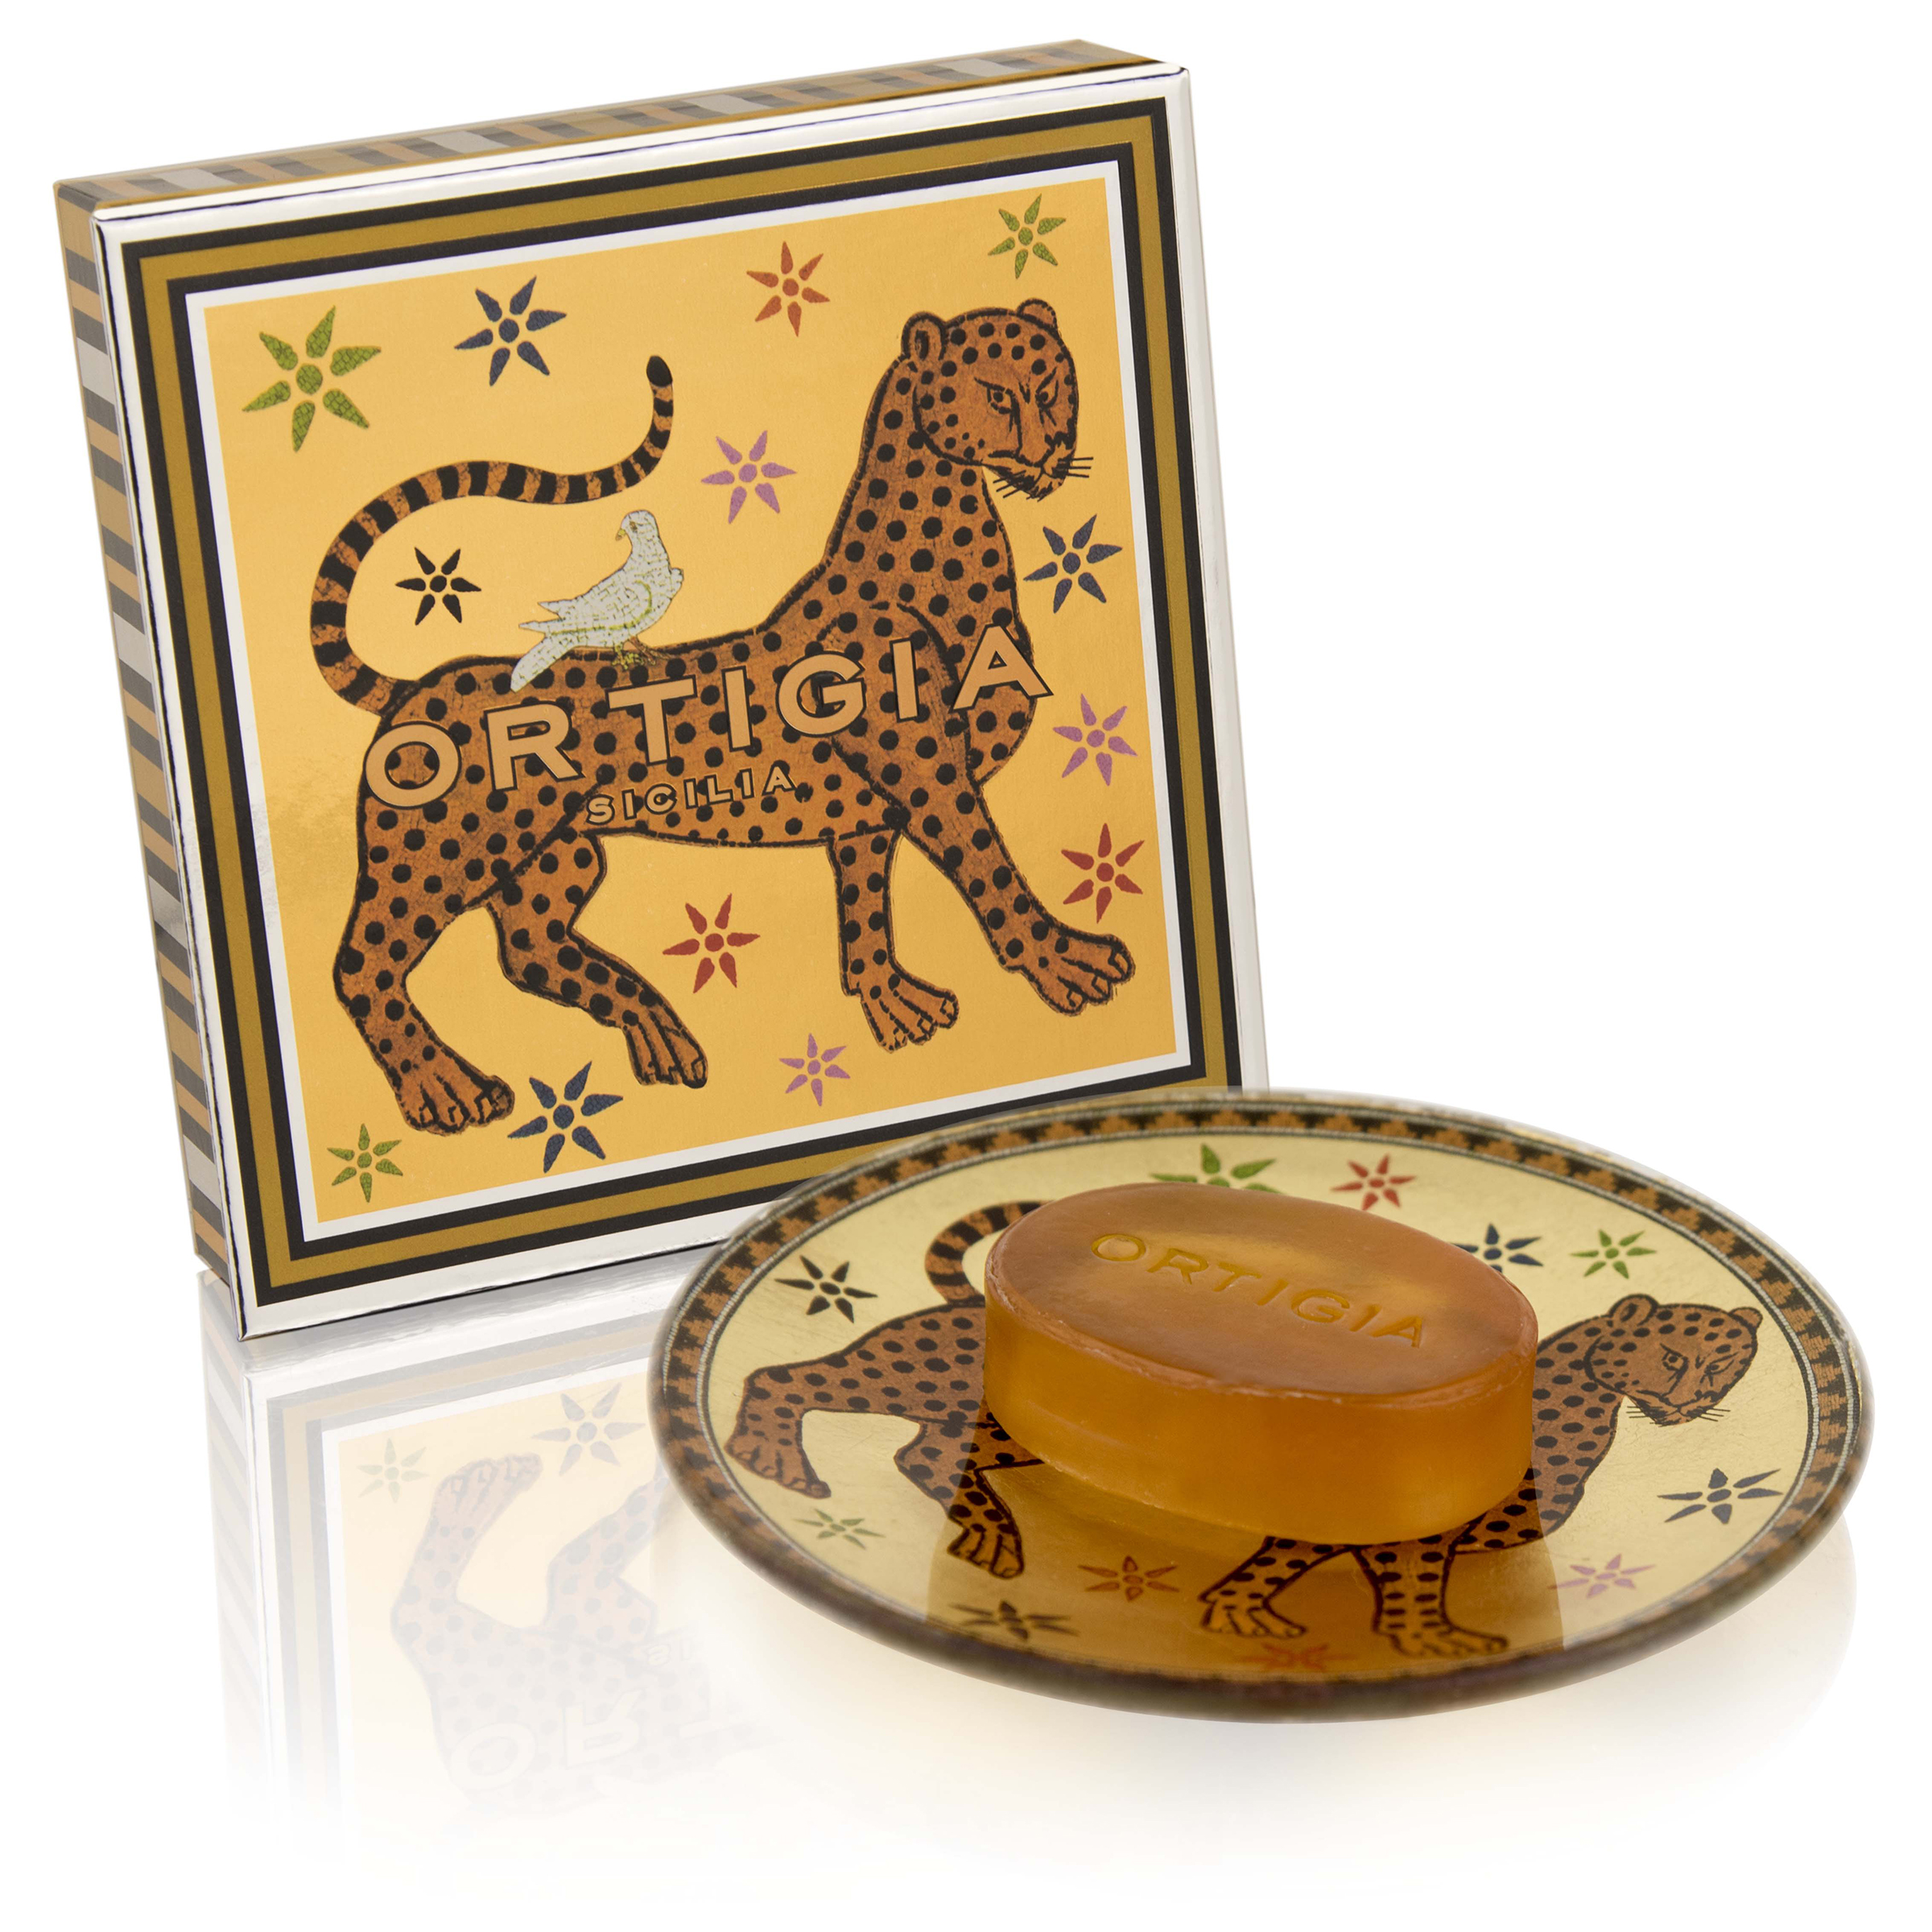 ORTIGIA Gattopardo Glass Plate & Soap